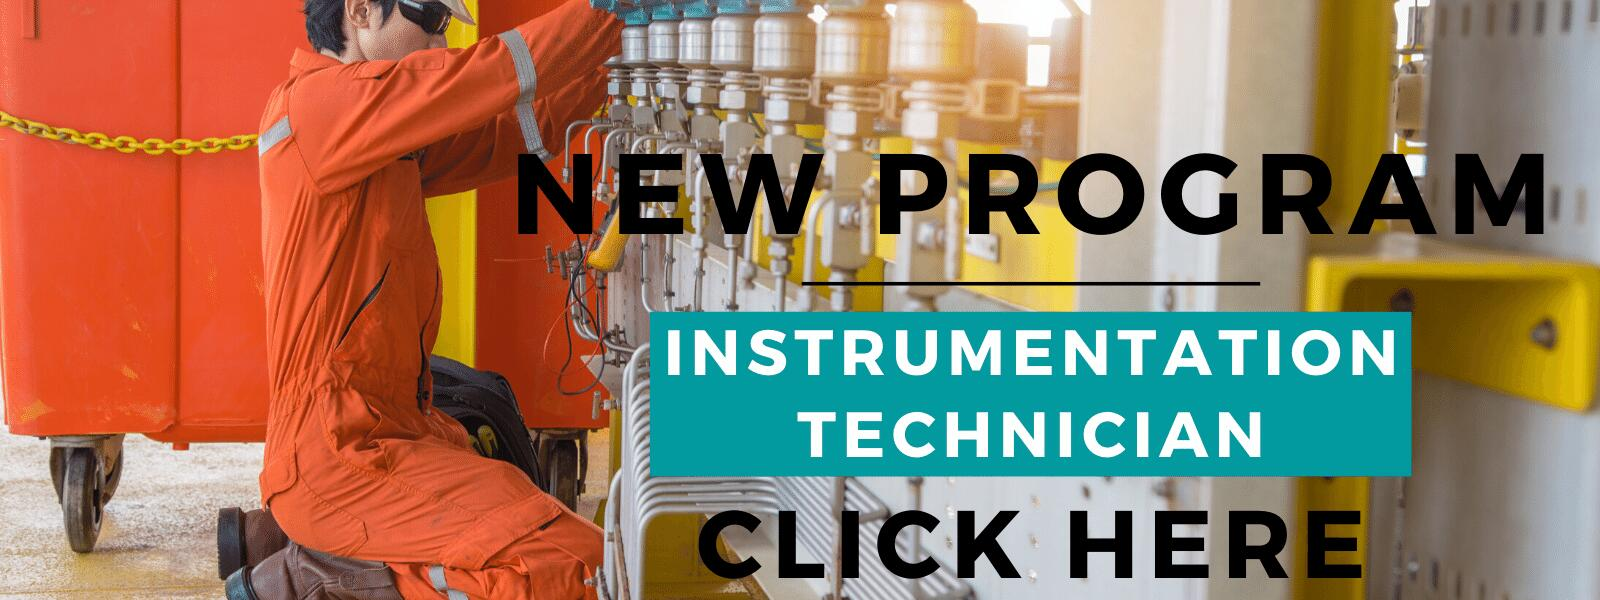 New Program: Instrumentation Technician - Click Here for More Information